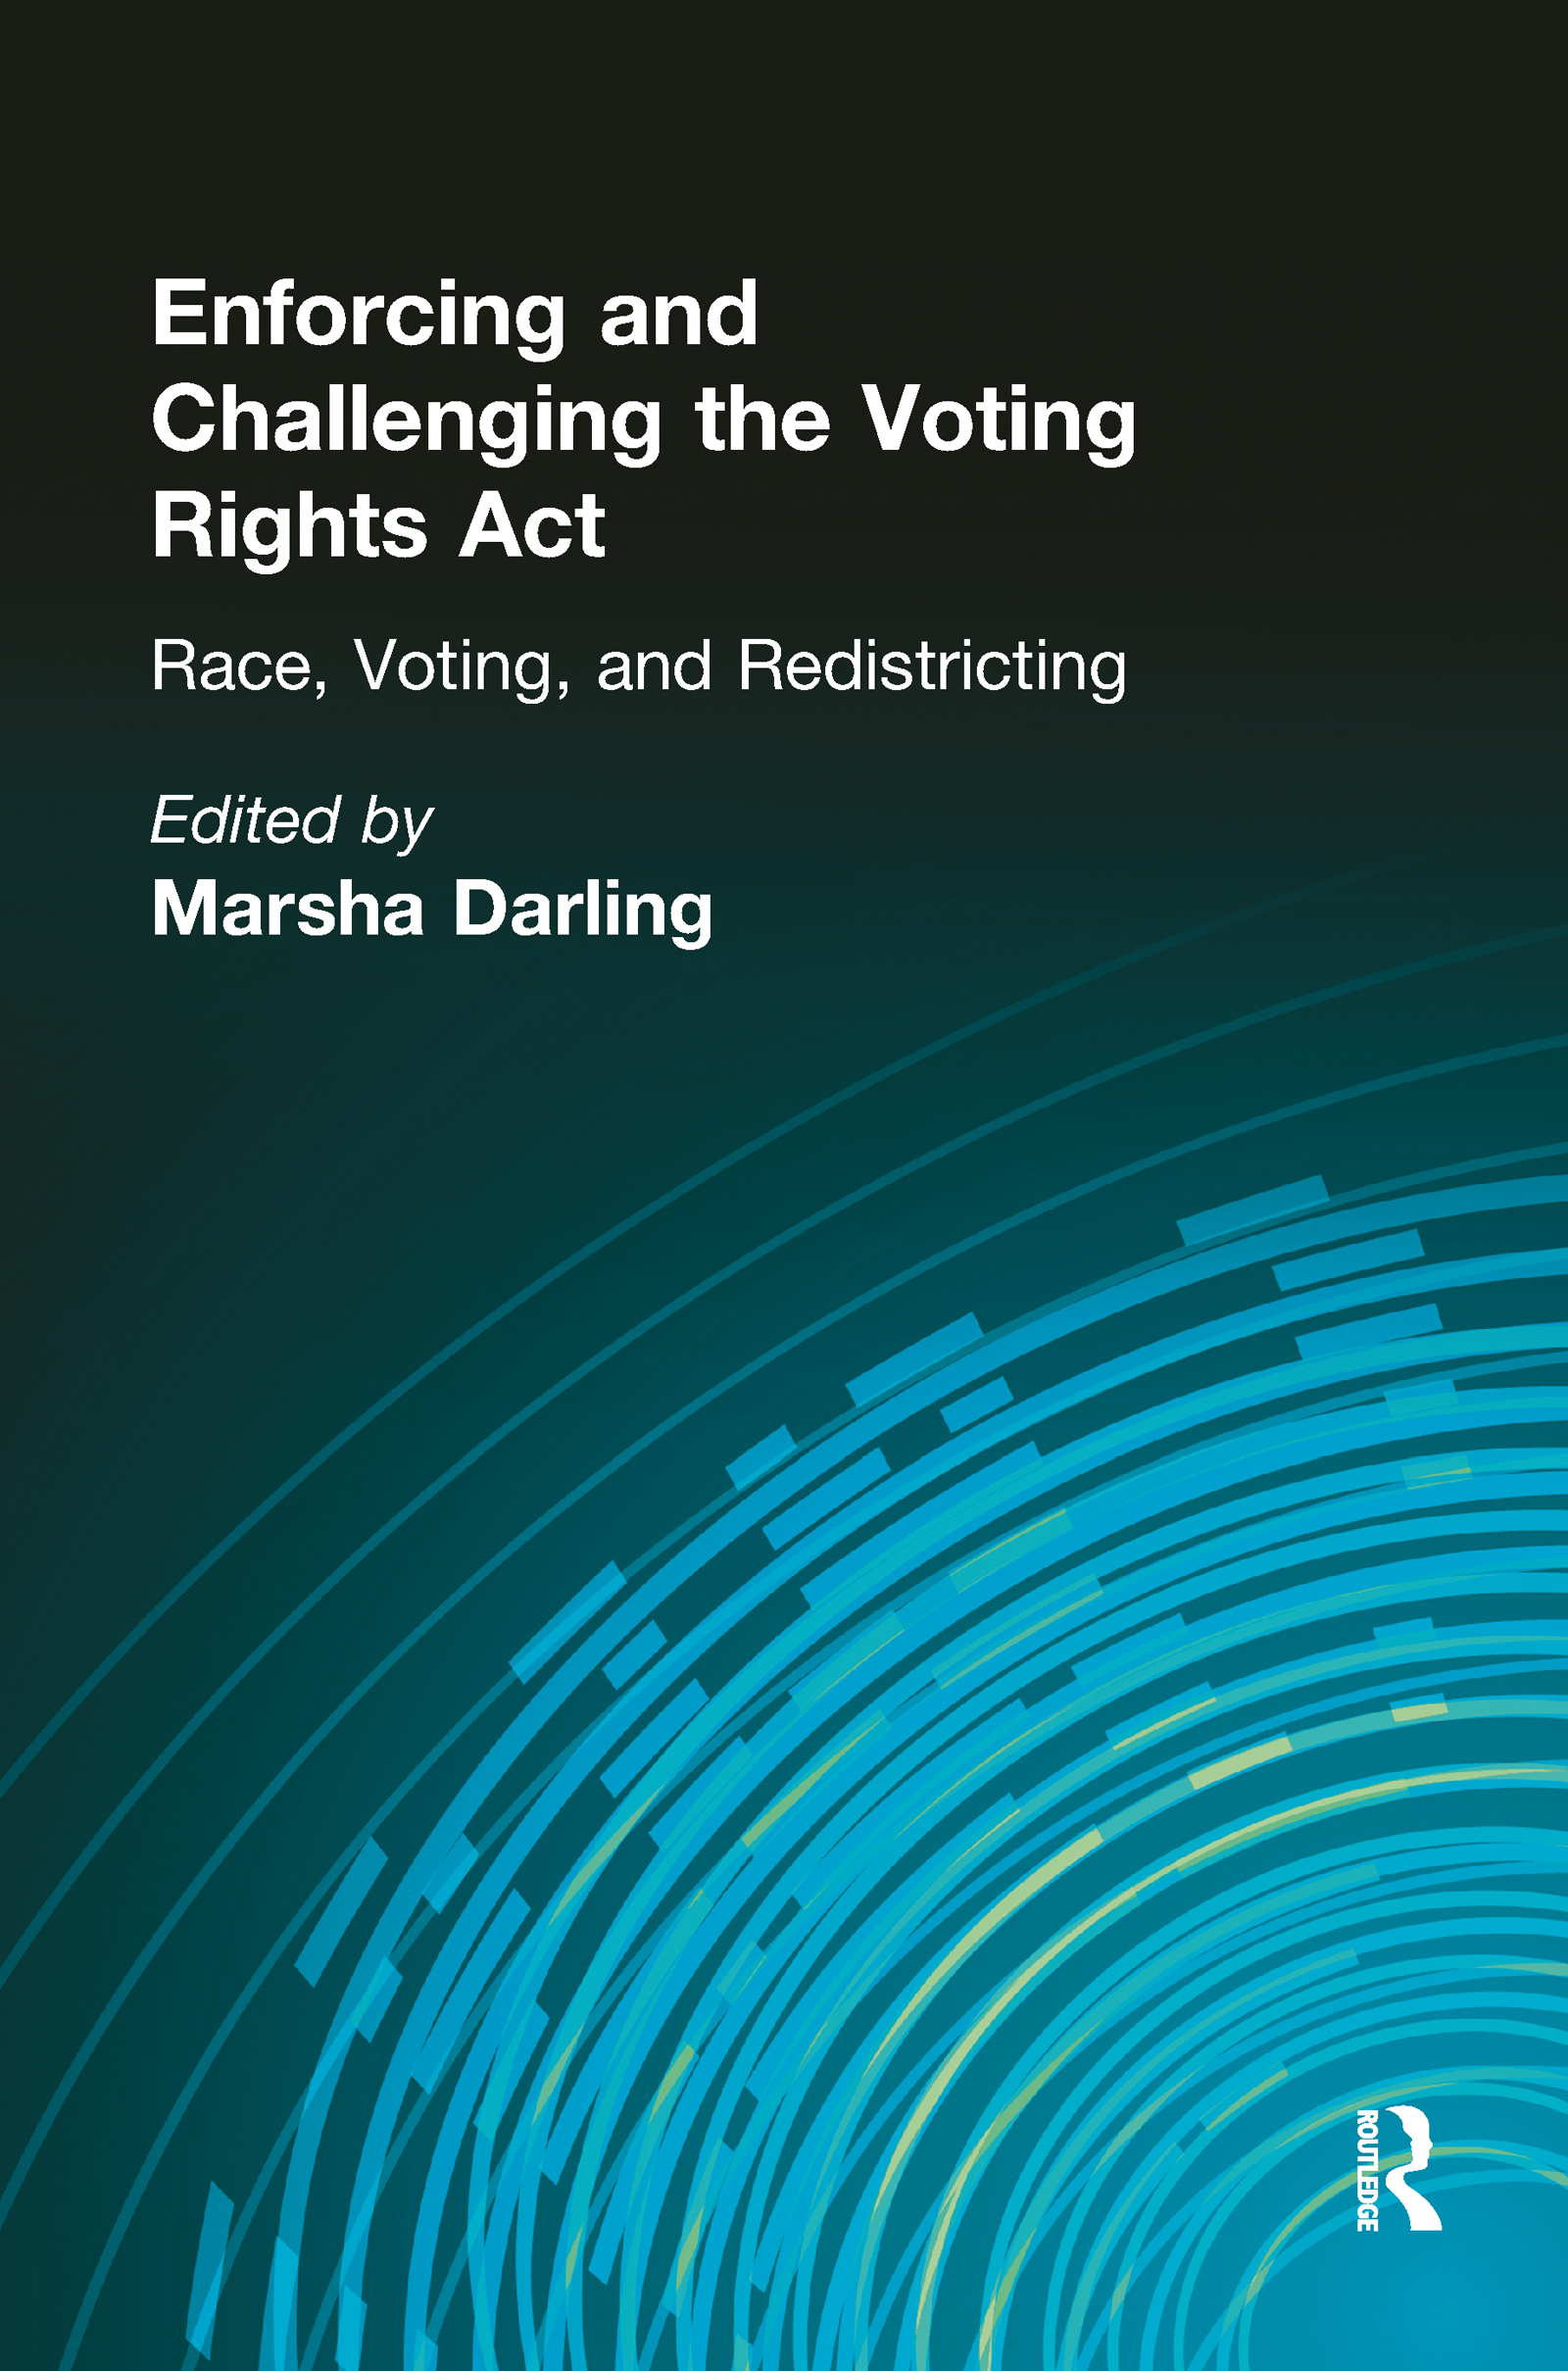 Enforcing and Challenging the Voting Rights Act: Race, Voting, and Redistricting book cover